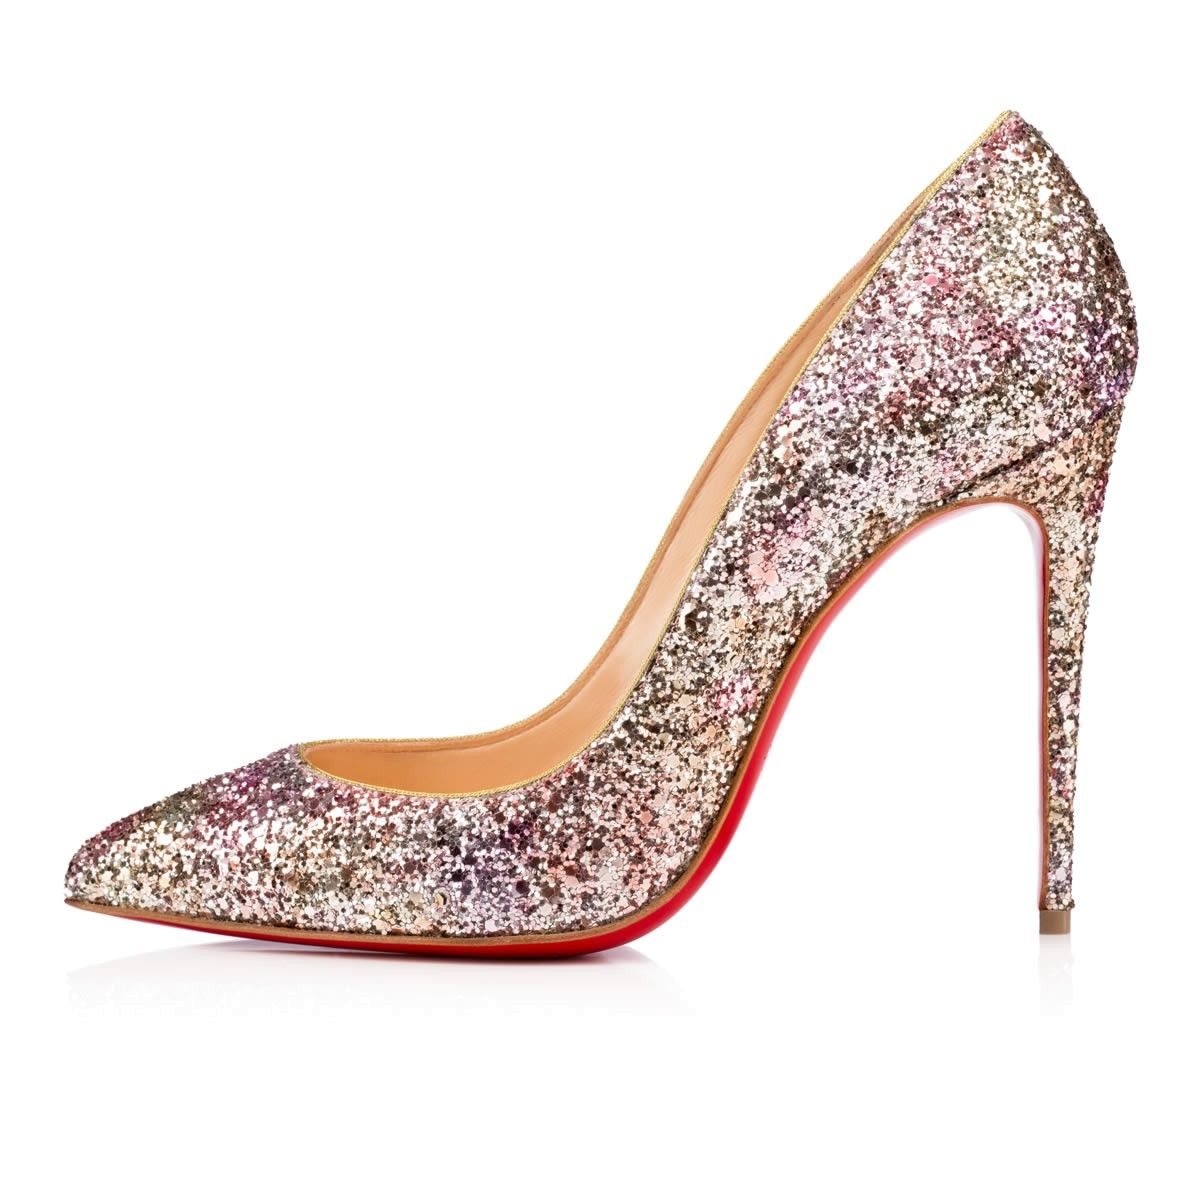 0f0db0040a9 ... promo code for christian louboutin wedding shoes pigalle follies  glitter hong kong 8c5f9 c4876 ...